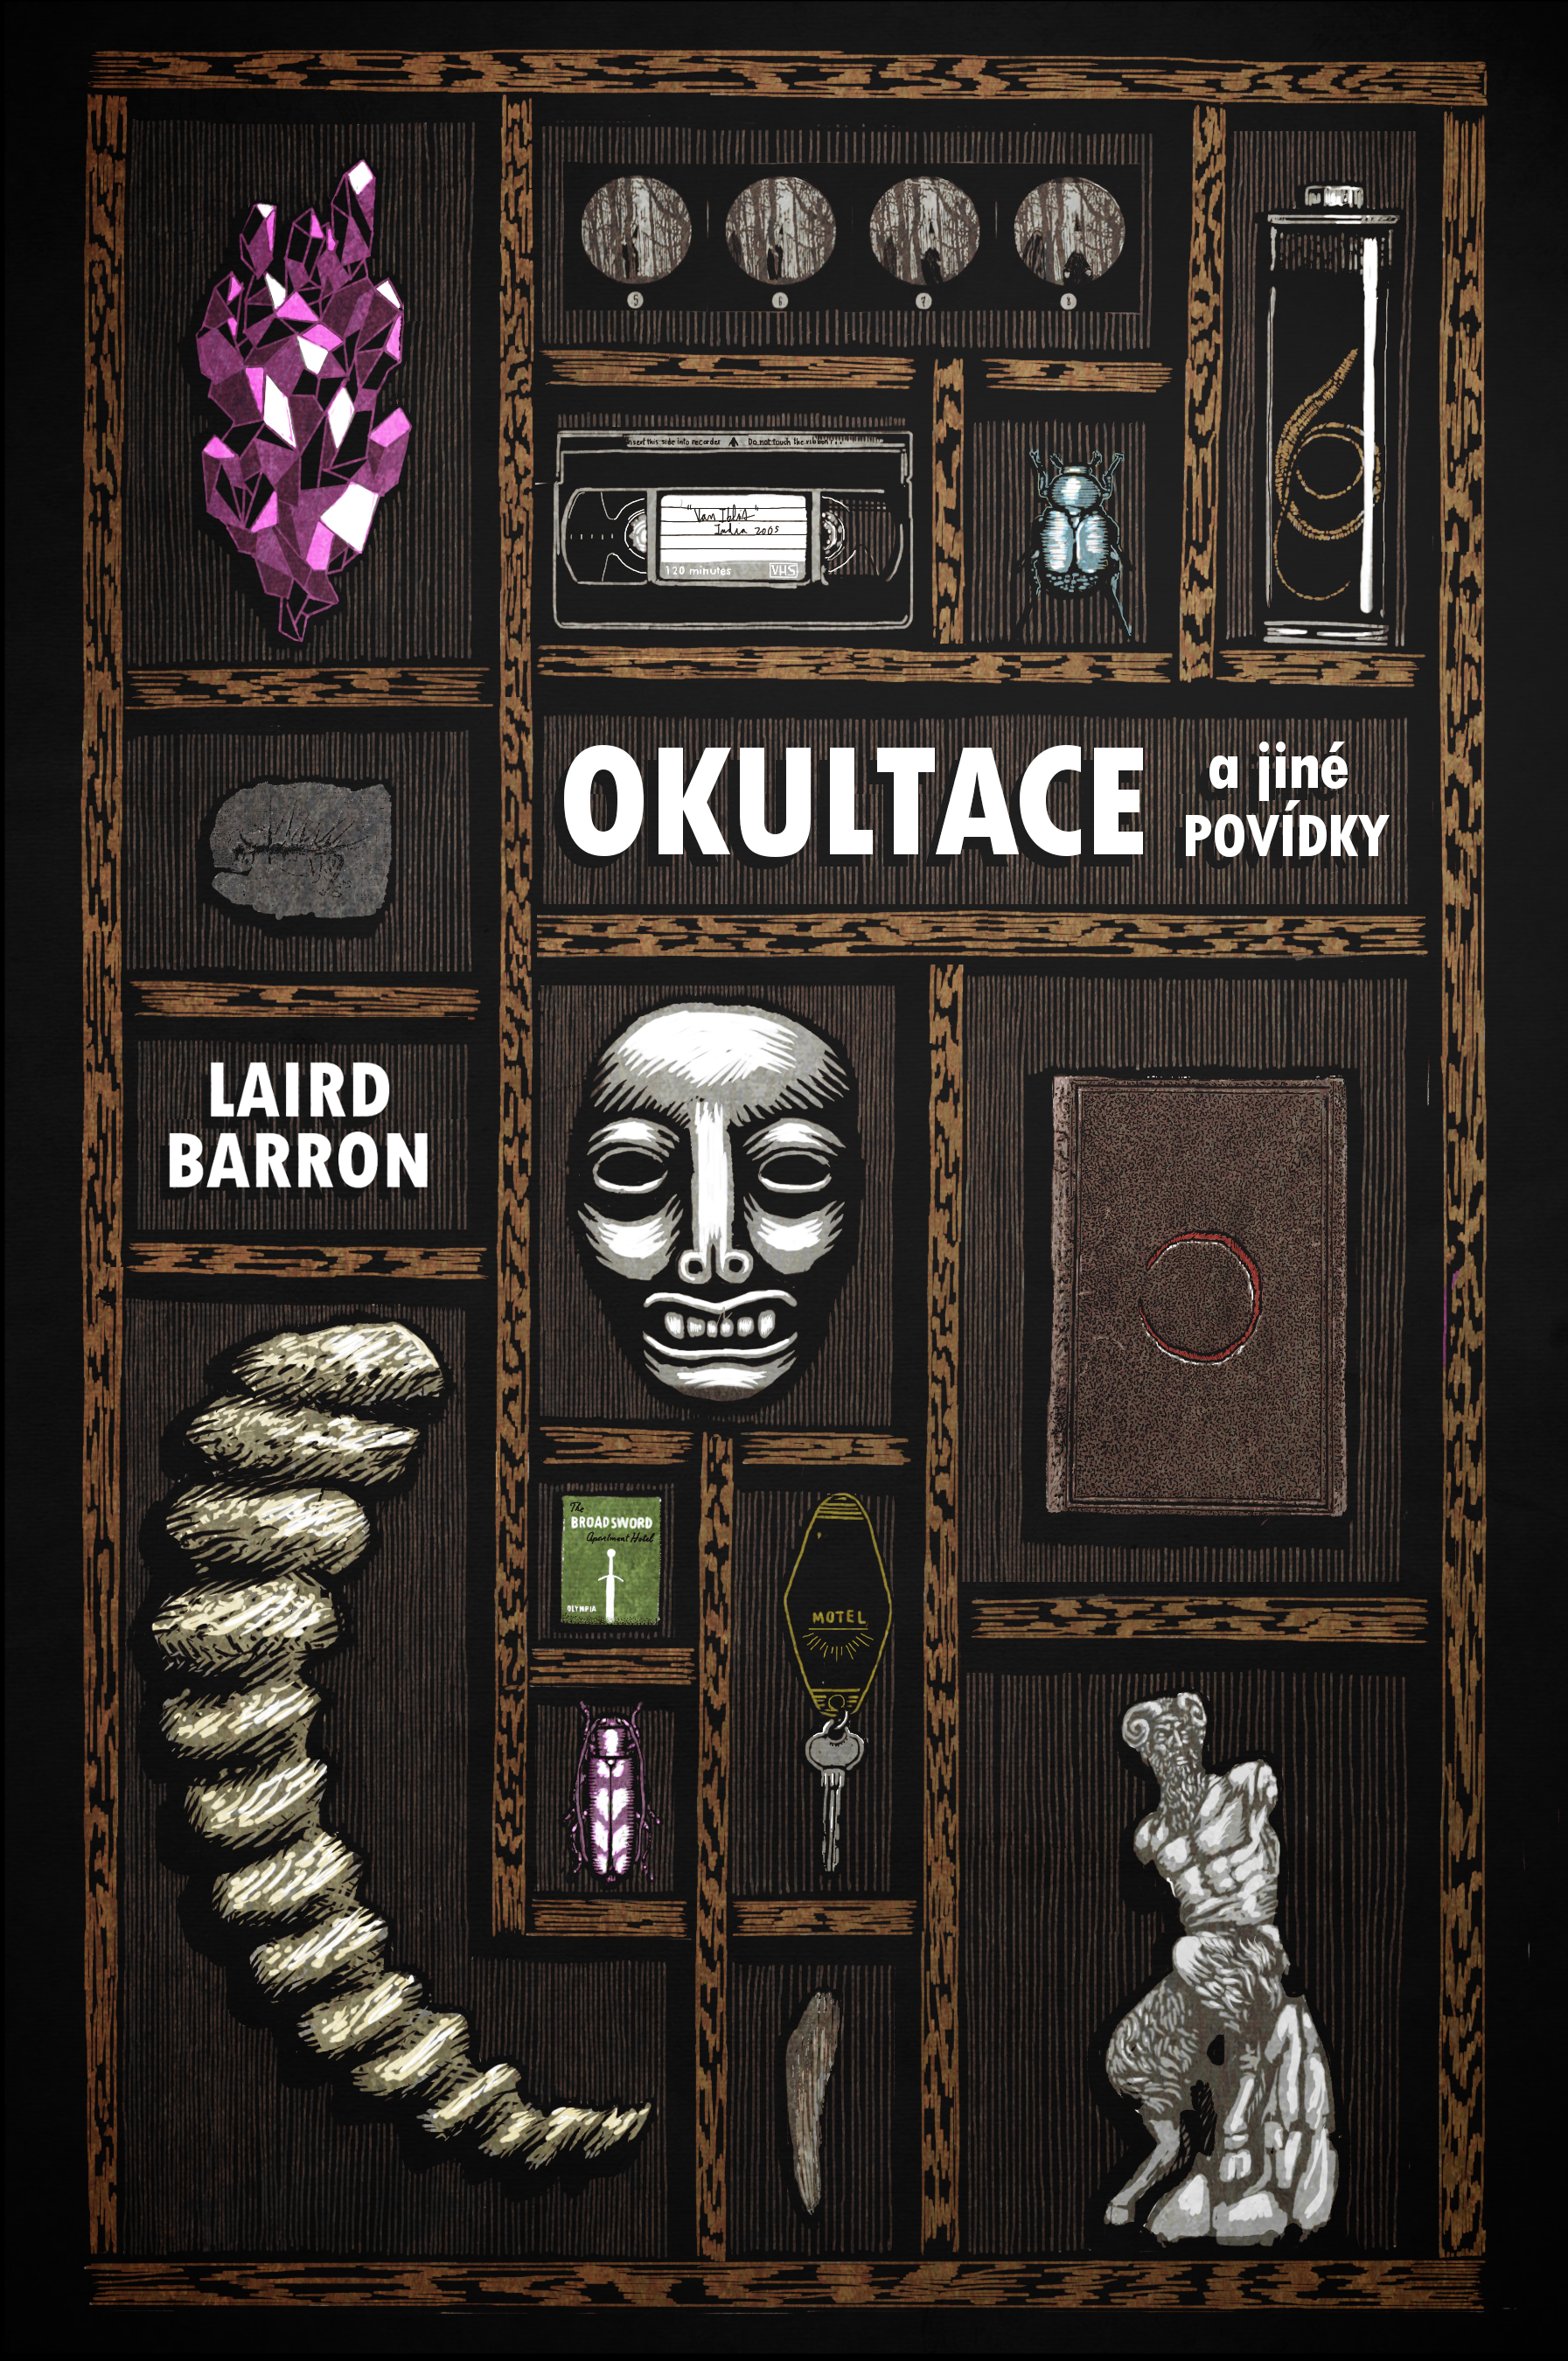 'Okultace a jiné povidky' by Laird Barron, book cover (Laser Books, 2016)